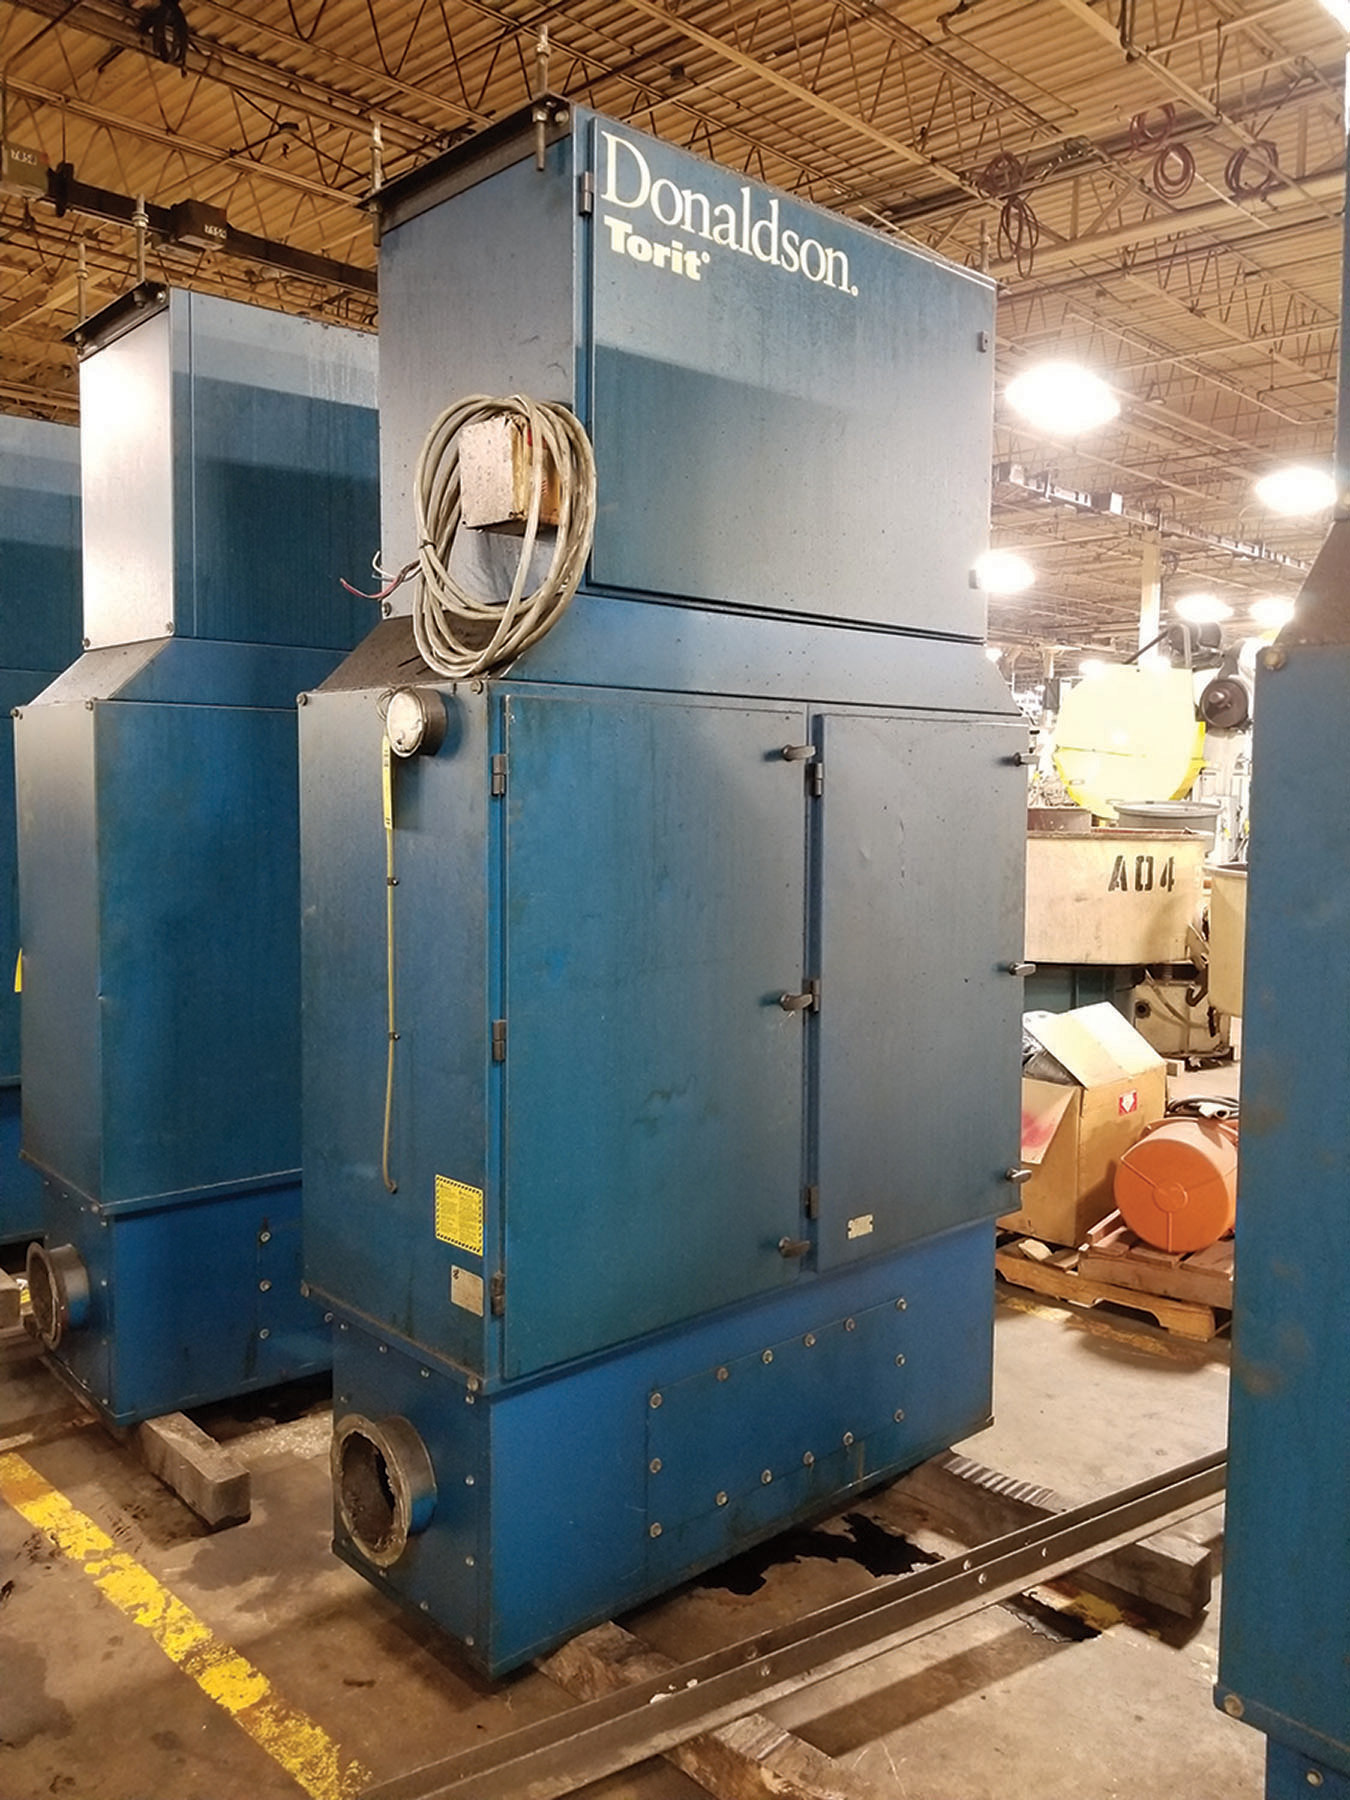 Lot 8 - DONALDSON TORIT MIST COLLECTOR - MODEL MDV- 6000, S/N IG736650, 3 1-HP, 60-CYCLE, 3,450-RPM ***$